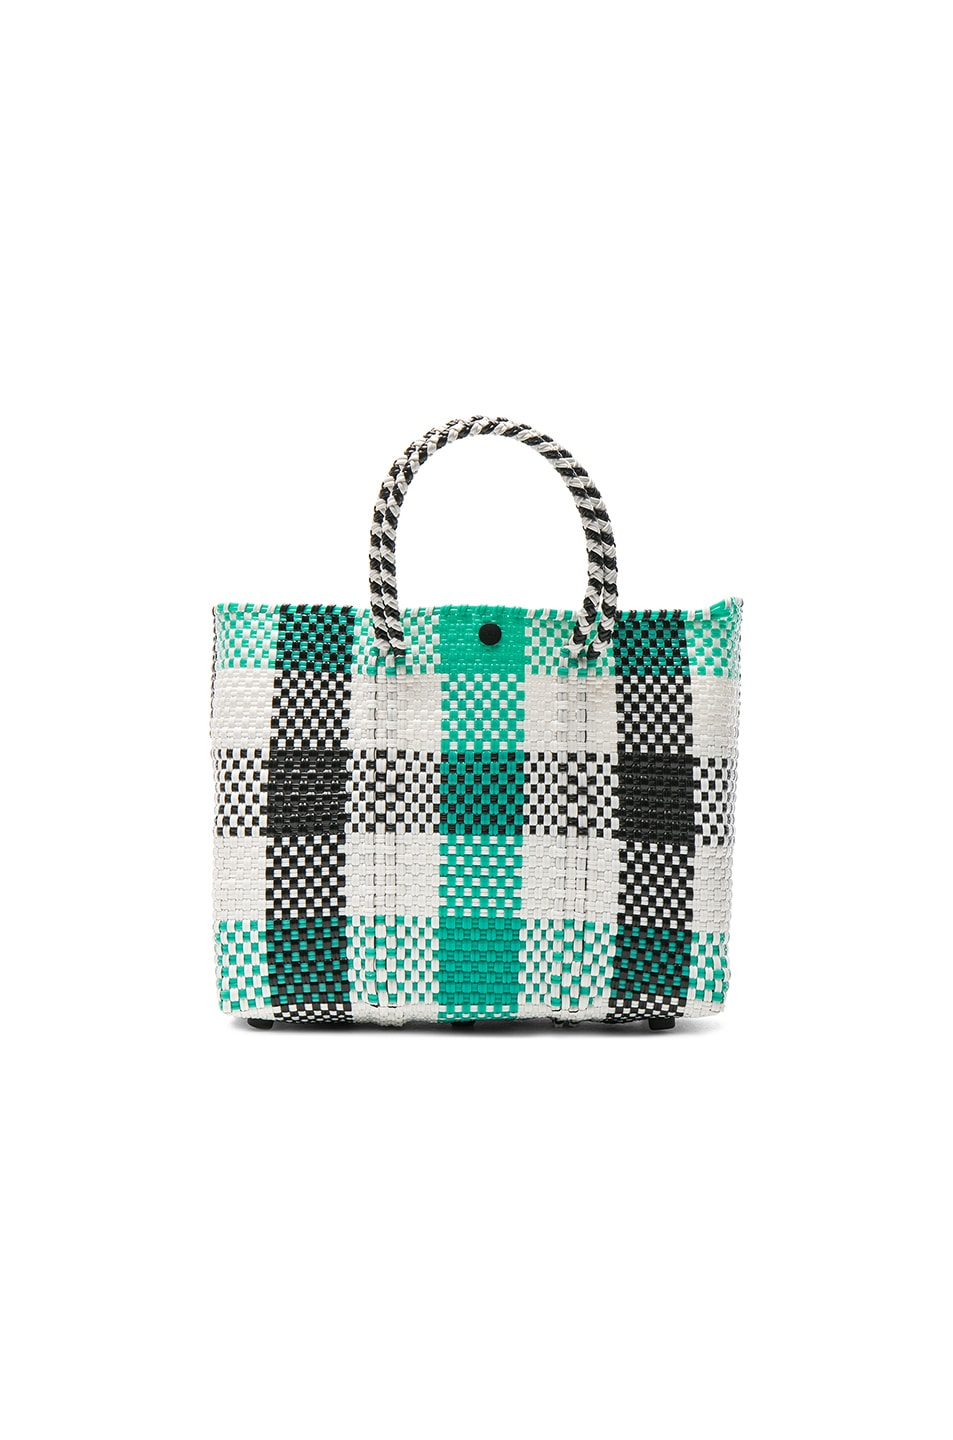 Image 1 of Truss Small Crossbody in Black & Aqua Plaid